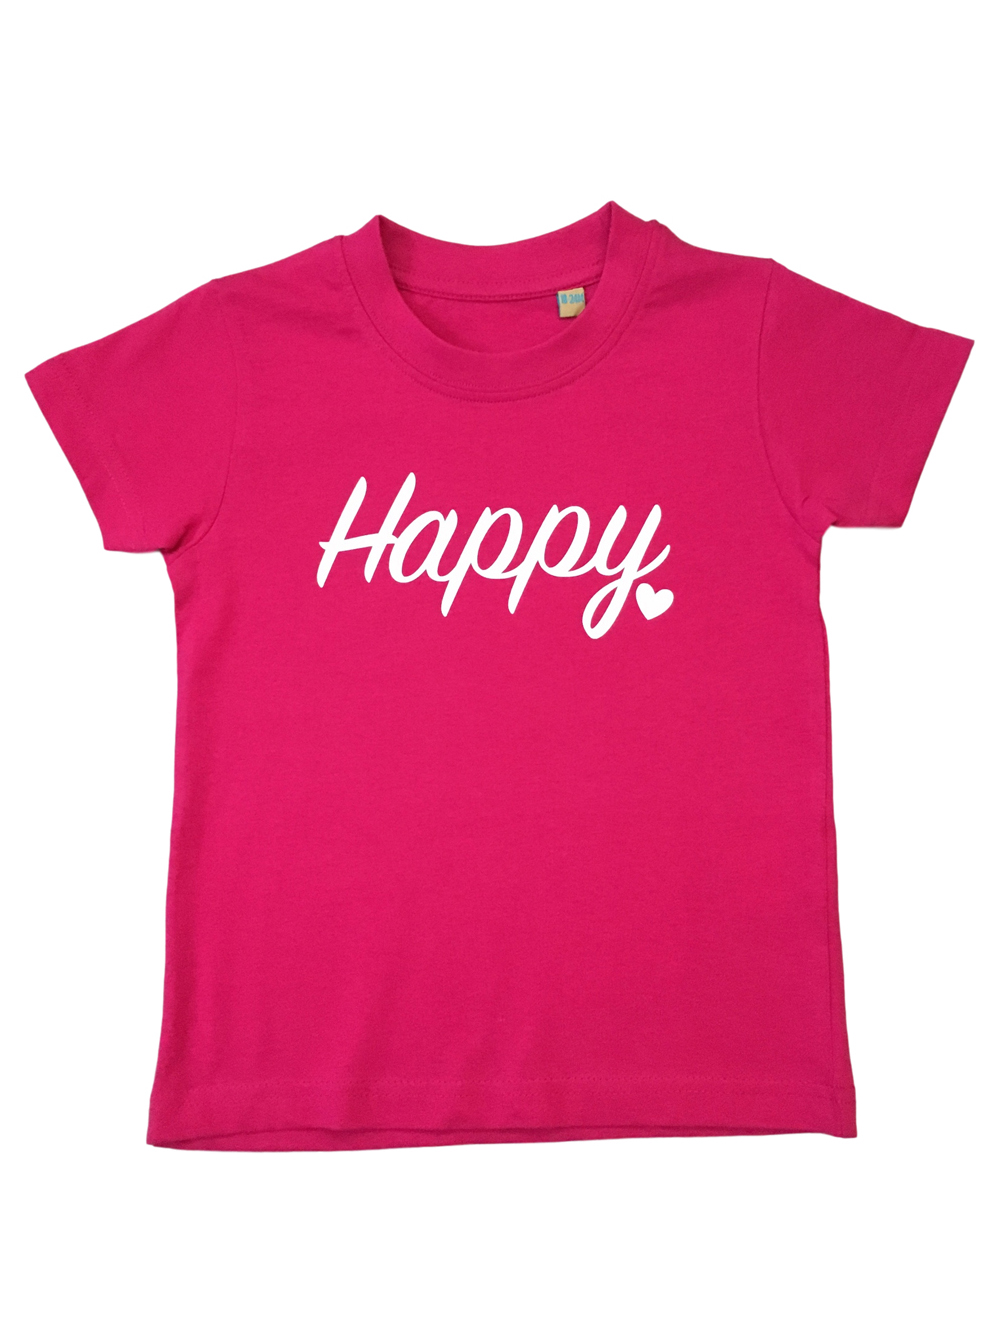 Childrens – Pink Happy T-shirt 18-24 Months